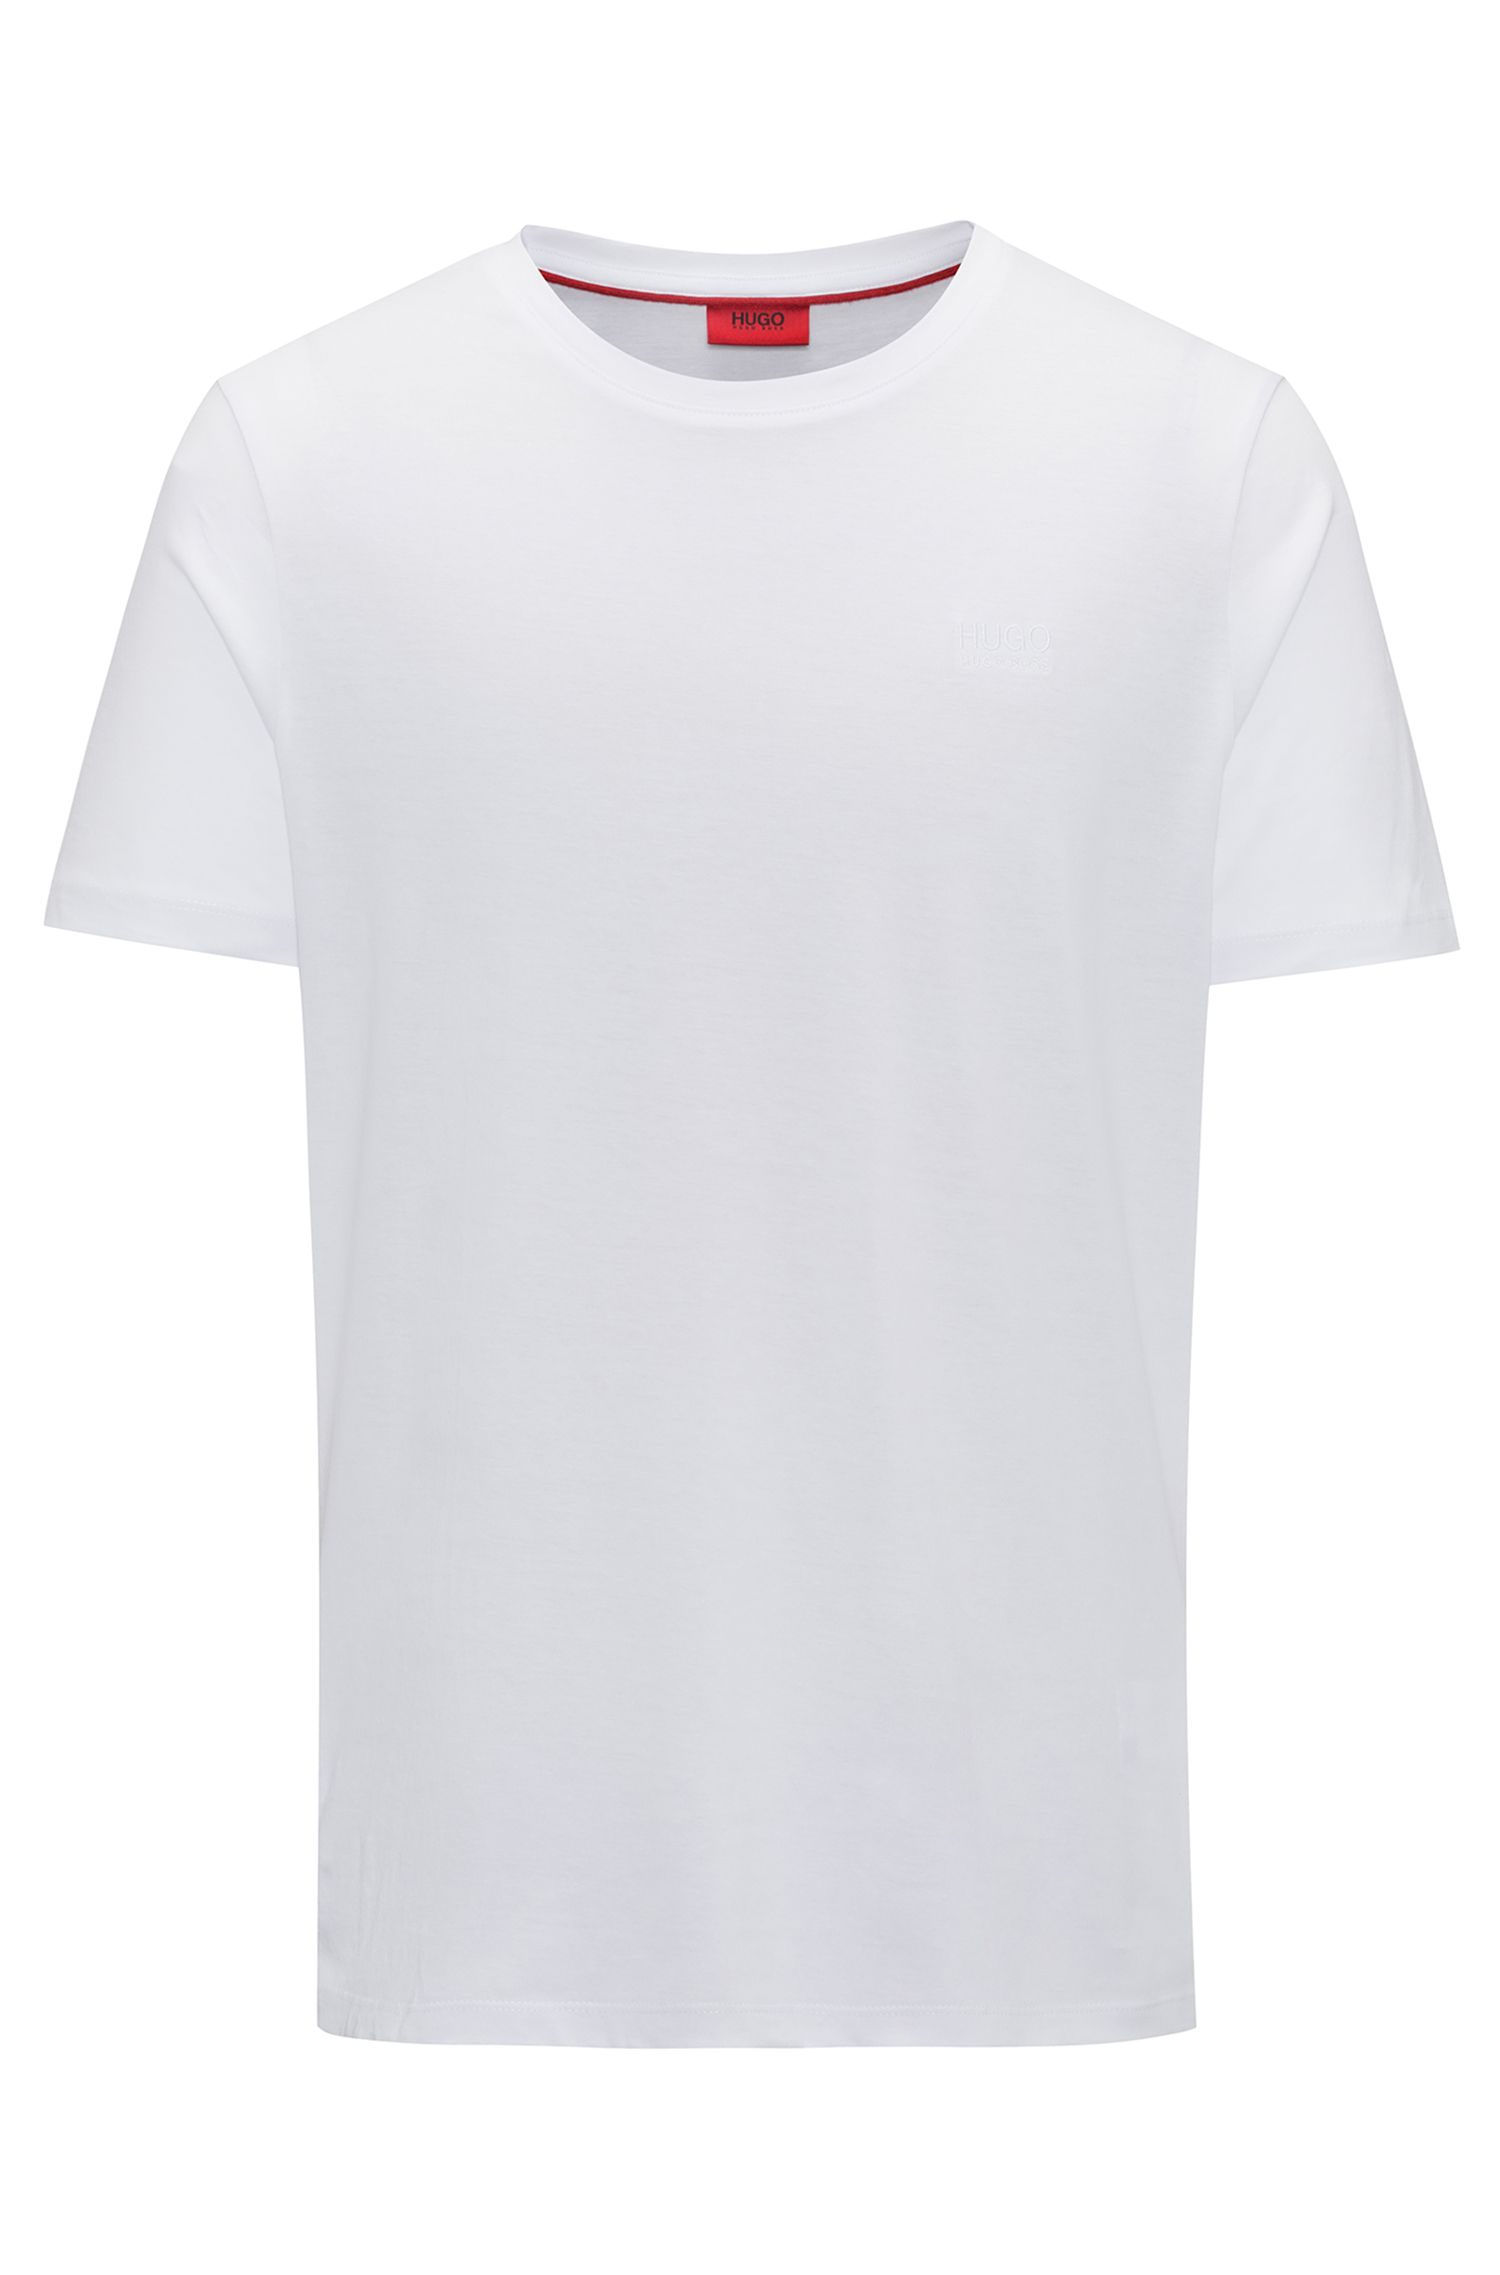 T-shirt Regular Fit en coton doux avec logo, Blanc